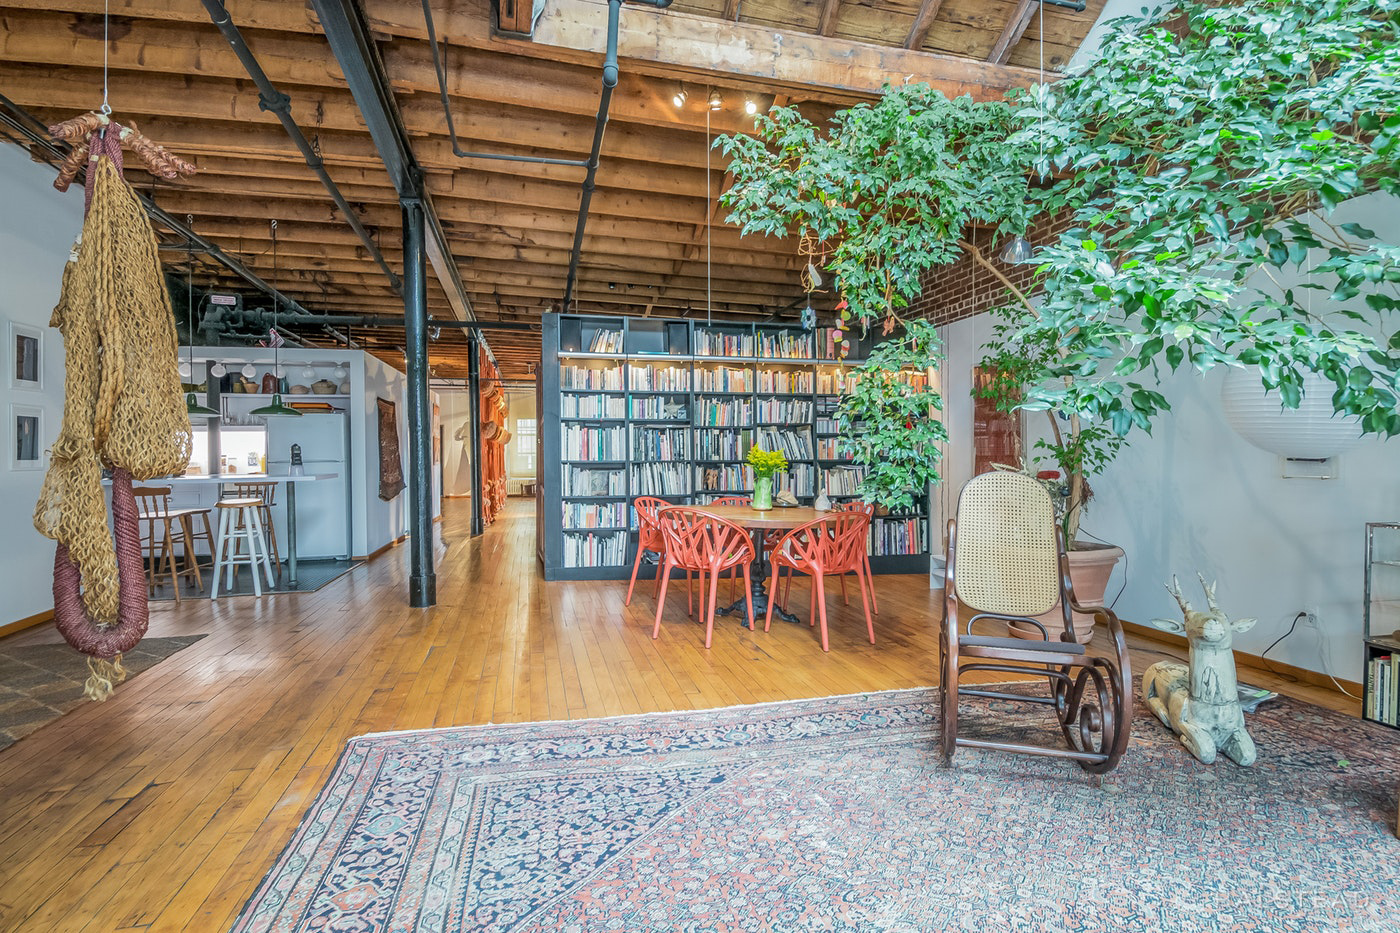 A 3,000 sq ft artist's loft in Manhattan lists for $4m